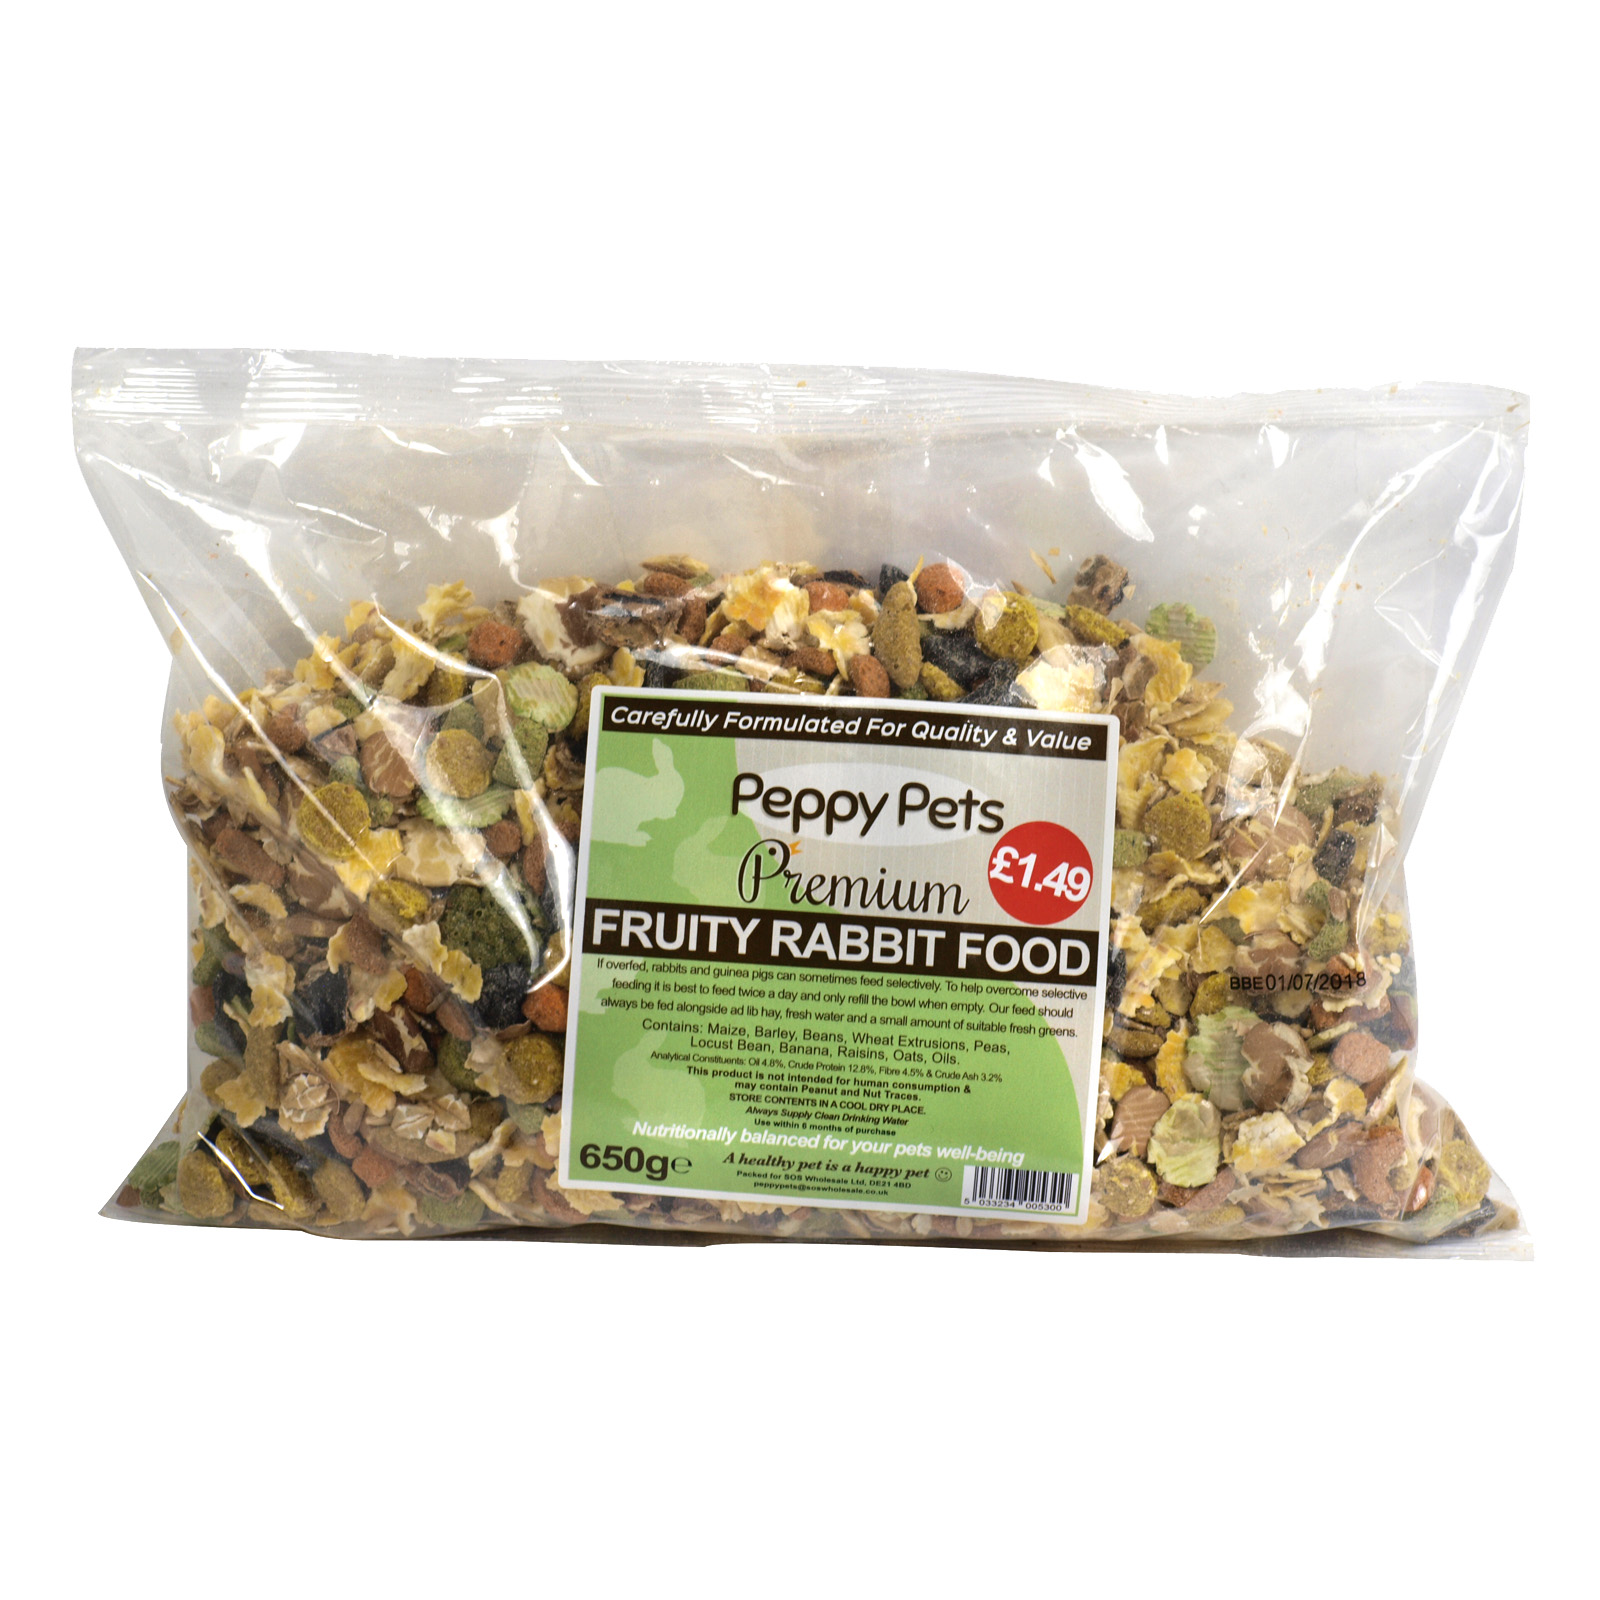 PEPPY PETS FRUITY RABBIT PM£1.49 650GM